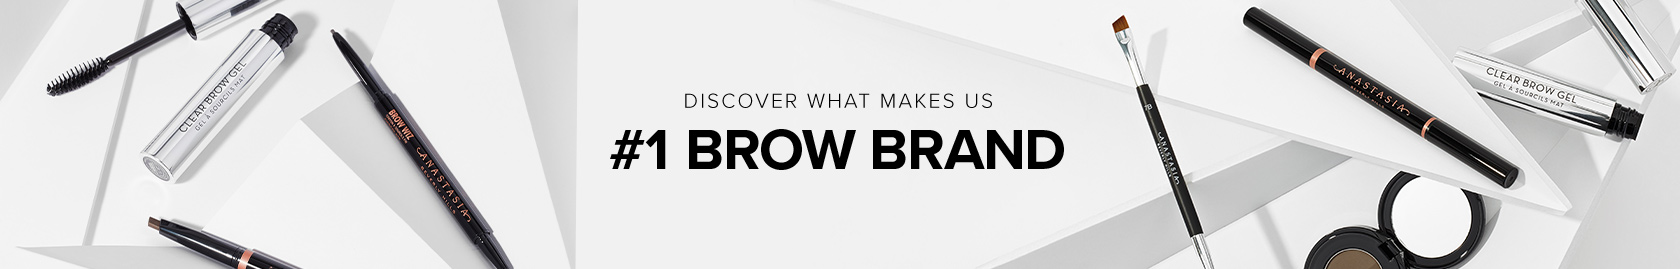 Discover What Makes Us #1 Brow Brand